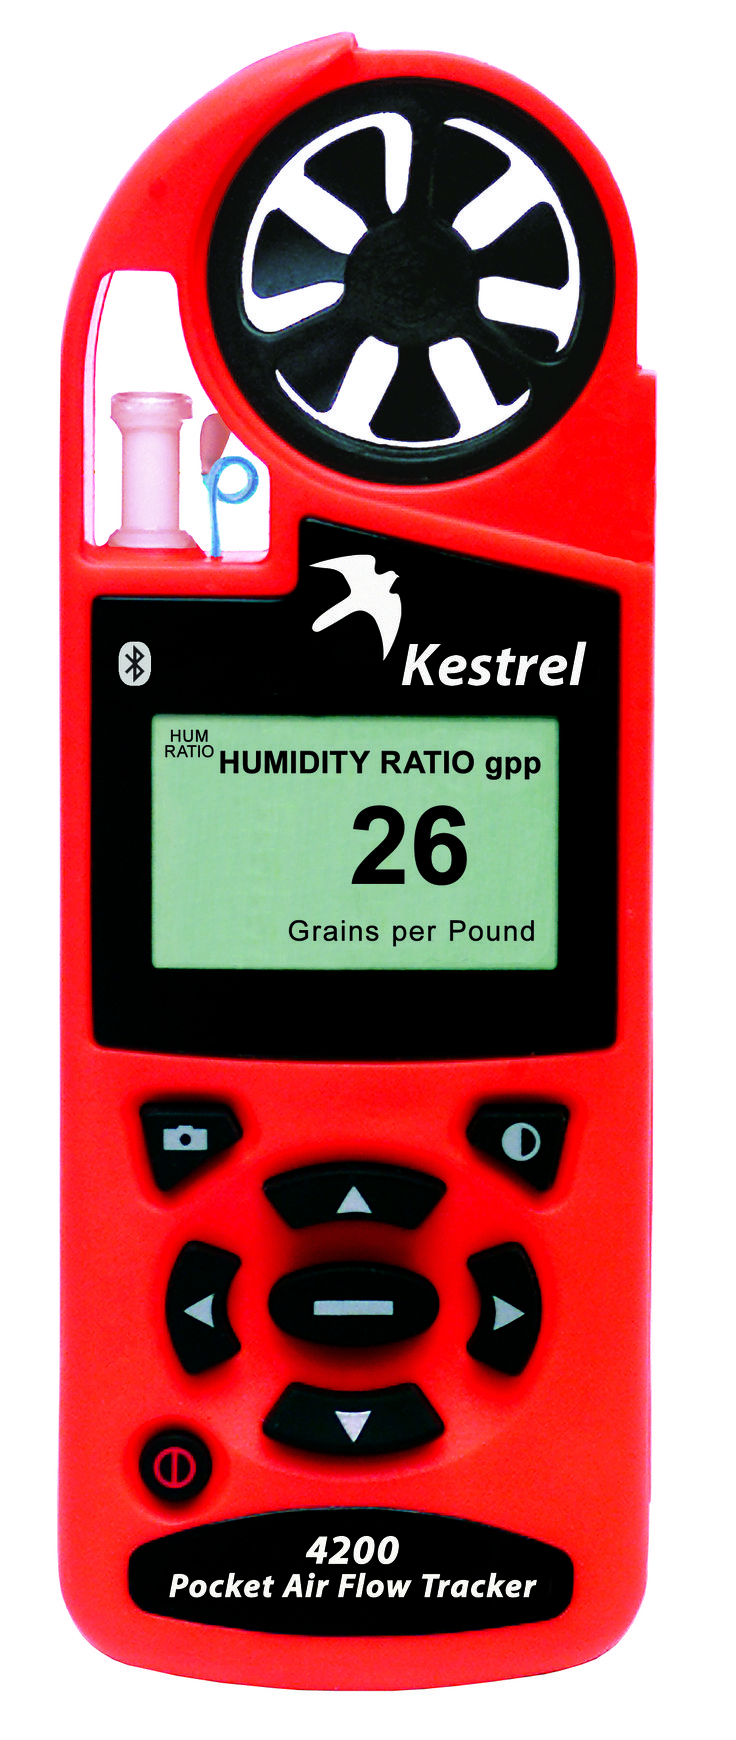 he Kestrel 4200 Pocket Air Flow Tracker monitors and reports an extensive list of environmental parameters — from temperature (Celsius or Fahrenheit) to barometric pressure, altitude, relative humidity, and more**. Like all Kestrel 4000-series meters, the Kestrel 4200 also stores that information and even charts up to 2000 data points for later analysis. The Kestrel 4200 has all available monitoring functions of the Kestrel 4000, plus Humidity Ratio and Air flow (CFM).